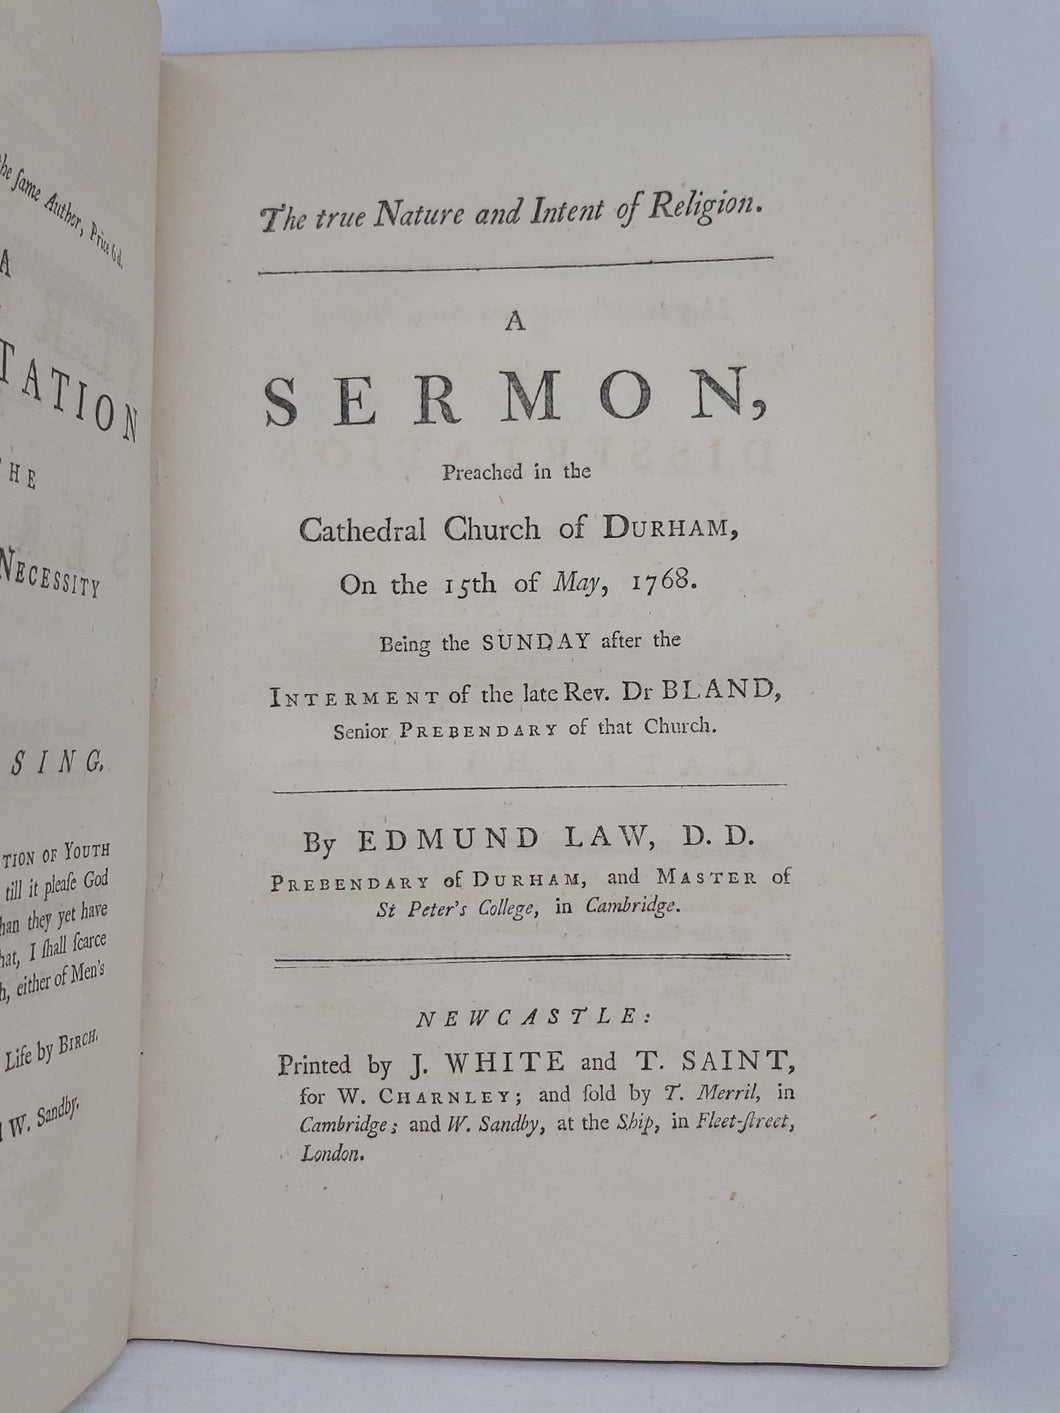 The True Nature and Intent of Religion. A sermon, preached in the cathedral church of Durham, on the 15th of May, 1768